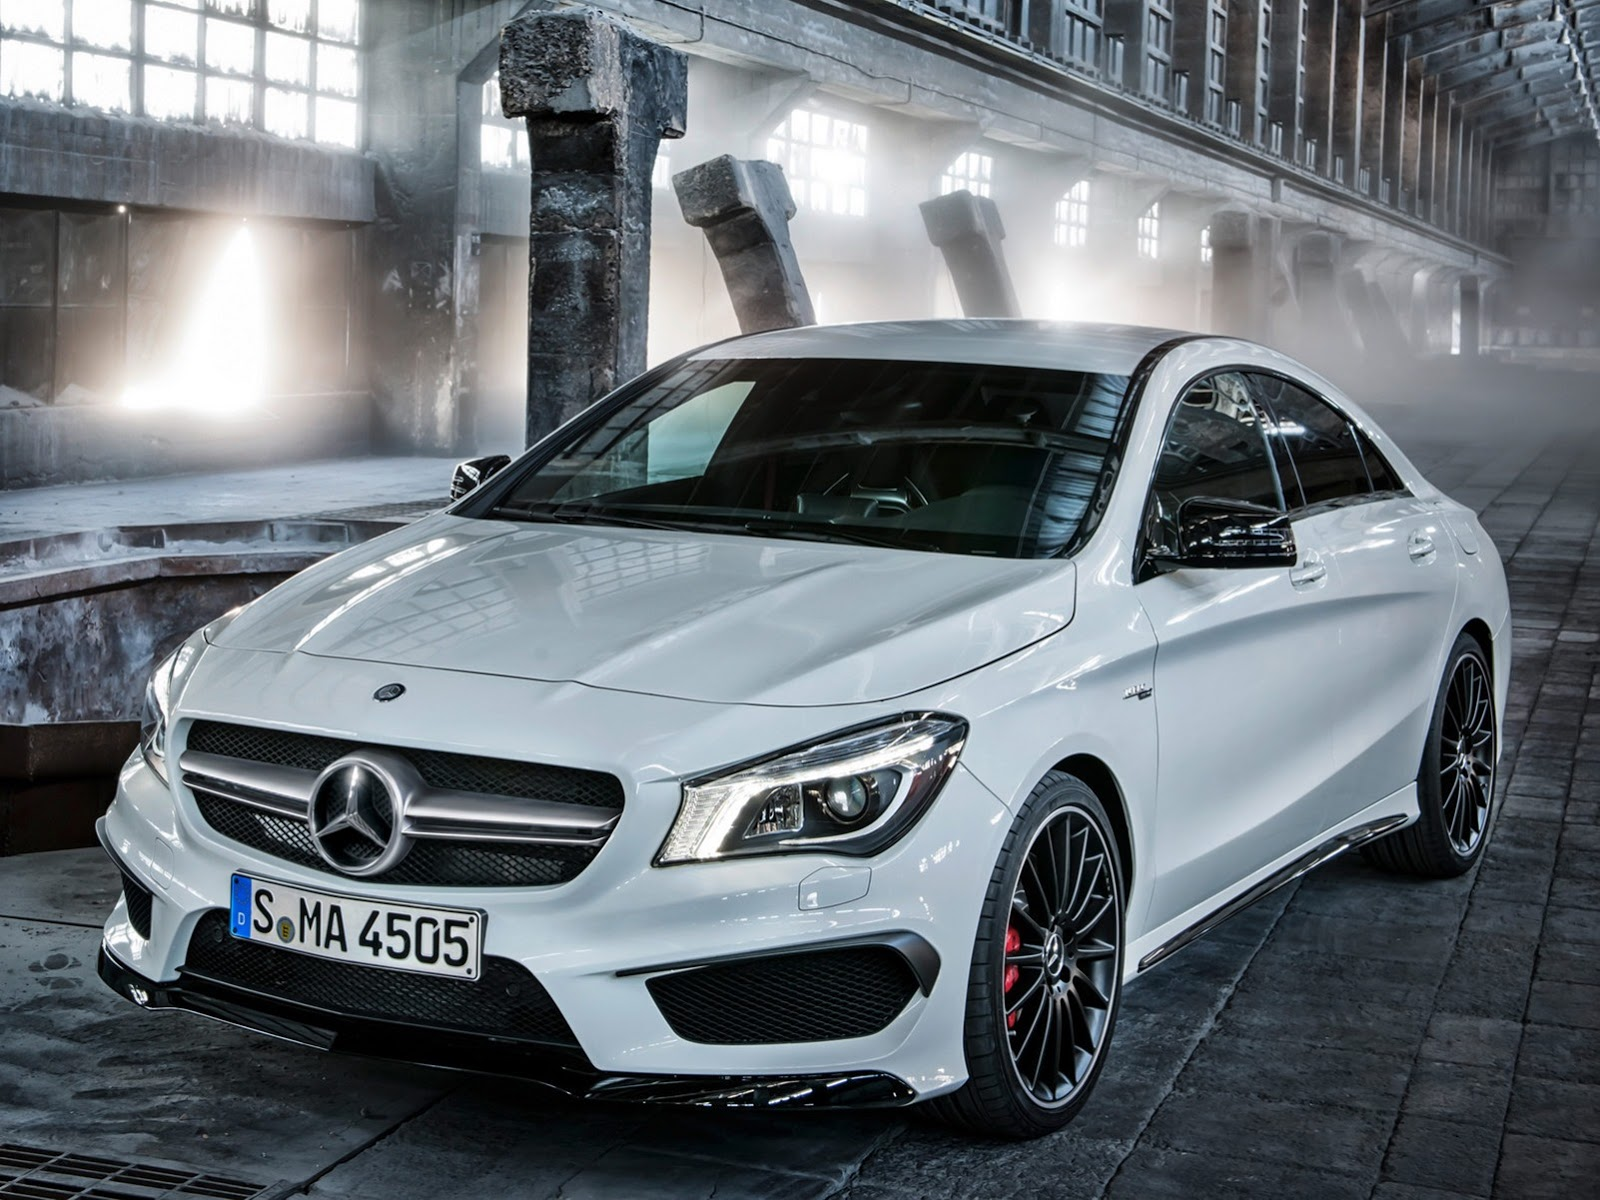 2014 Mercedes CLA 45 AMG First Photos Leaked - Photo Gallery